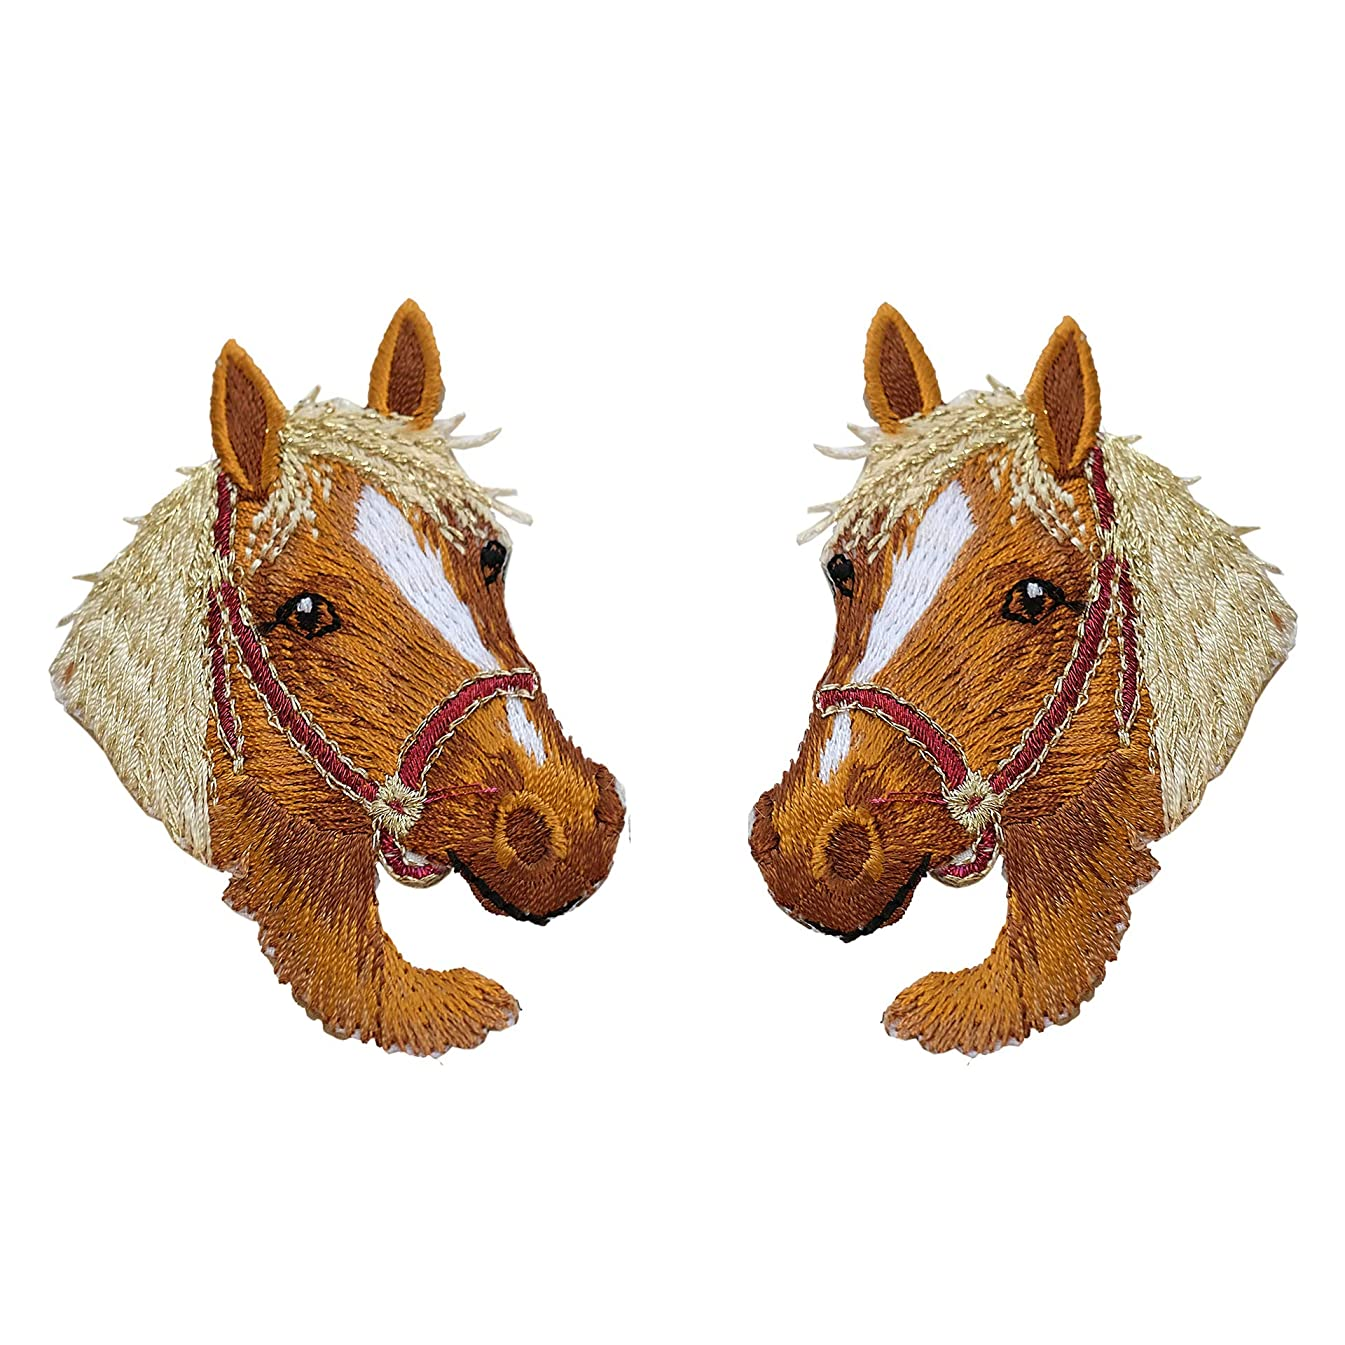 2 Pcs Cute Horse Delicate Embroidered Patches, Cute Embroidery Patches, Iron On Patches, Sew On Applique Patch, Clothes Shirt Decorate Accessory DIY Patchwork Cool Patches for Men, Women, Kids